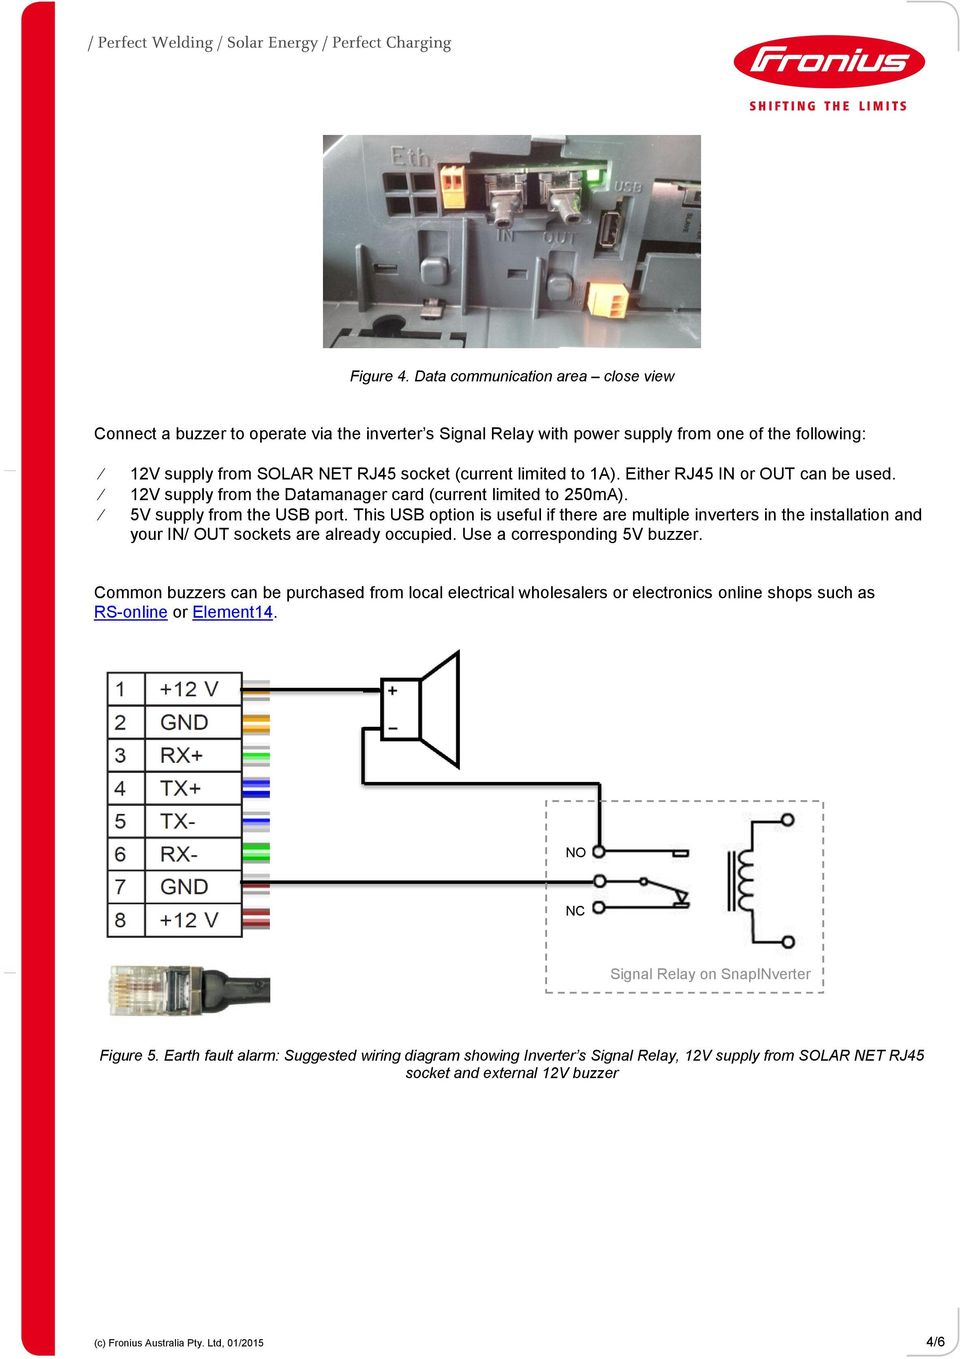 How to set up earth fault alarm on fronius inverters pdf 1a either rj45 in or out can be used 12v supply from the cheapraybanclubmaster Choice Image